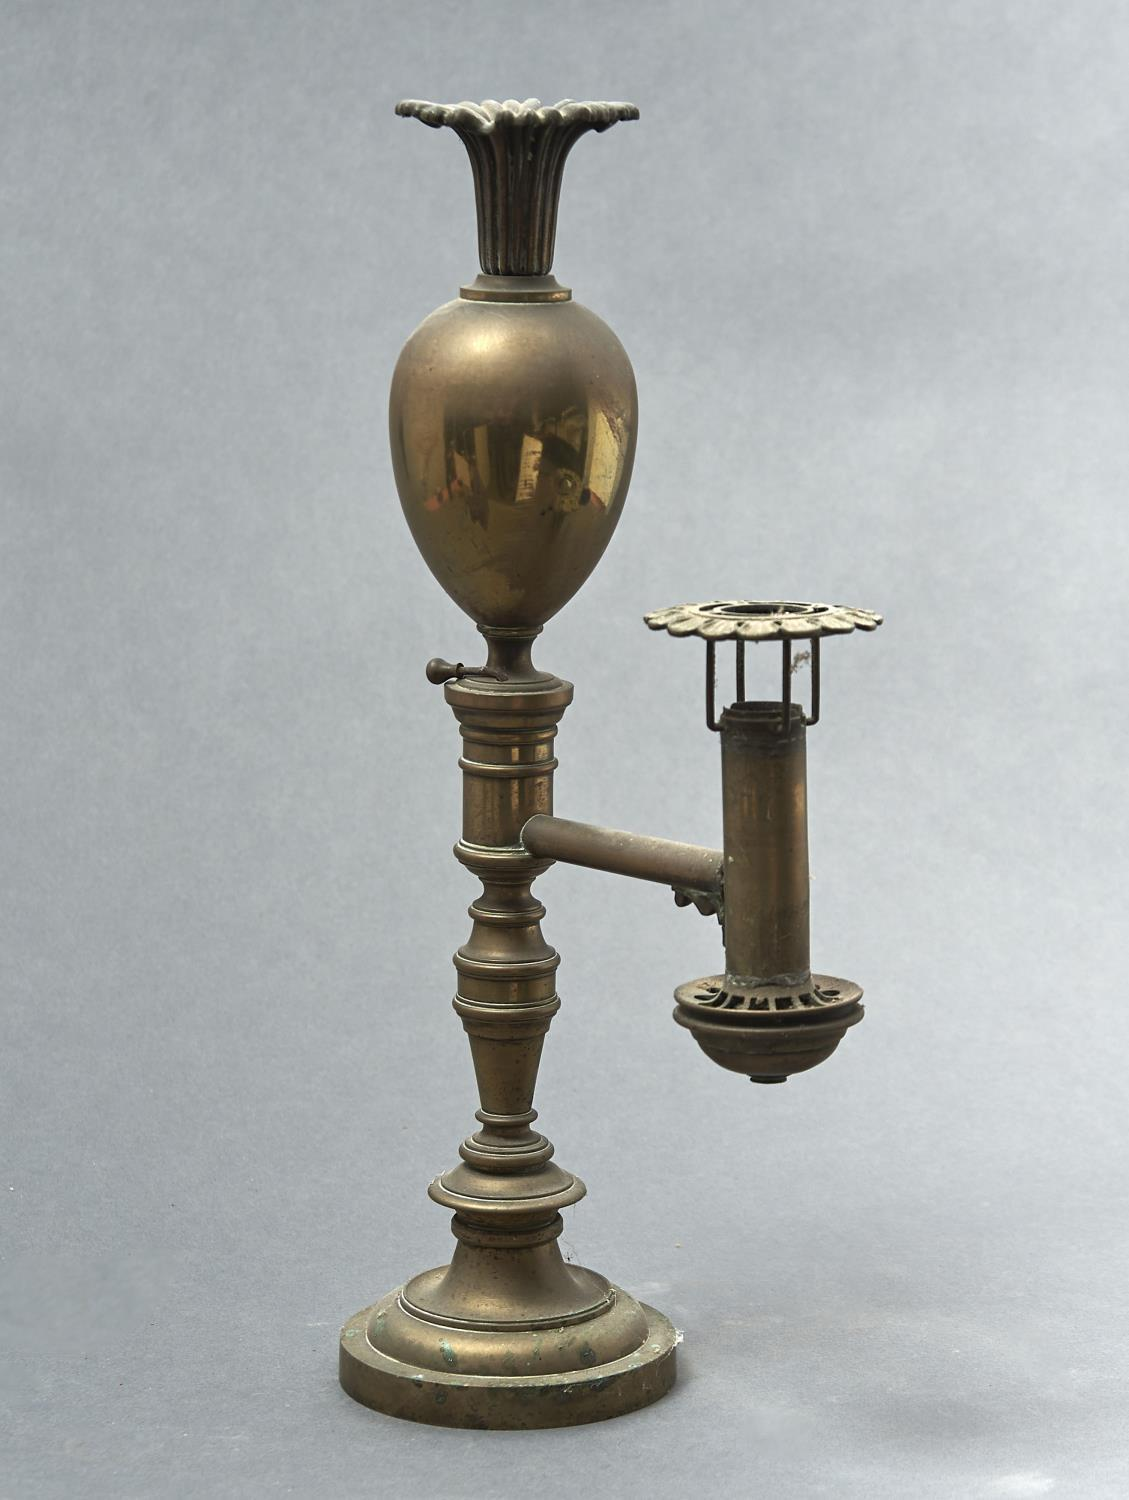 A WILLIAM IV BRASS COLZA LAMP, C1830, OF OVOID FORM WITH FLARED NECK, THE ARM WITH FLORIFORM KNOP,